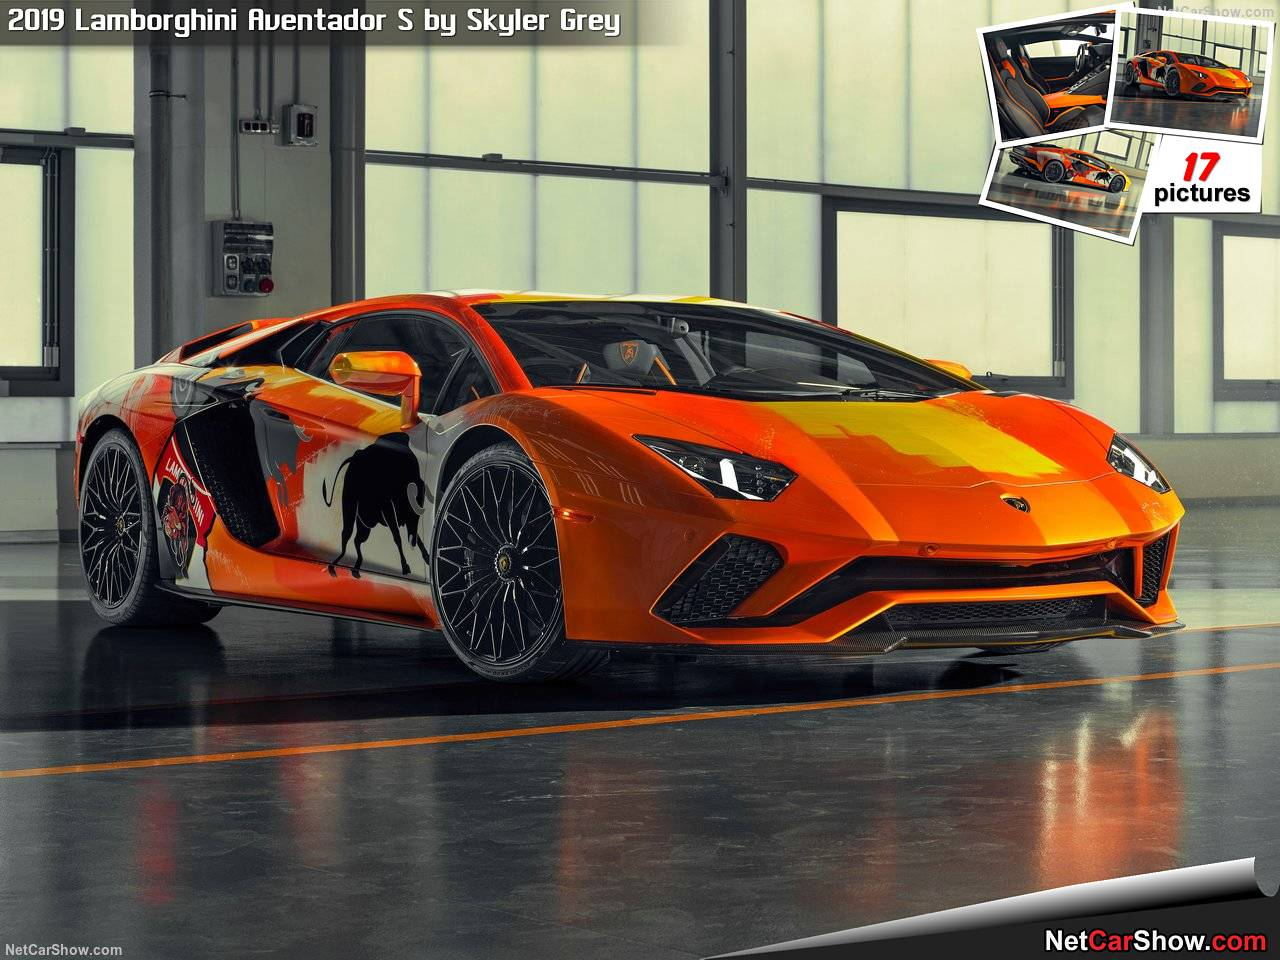 The resplendent vehicle you can see here is a result of cooperation between Lamborghini and Skyler Grey, 19, from Los-Angeles.